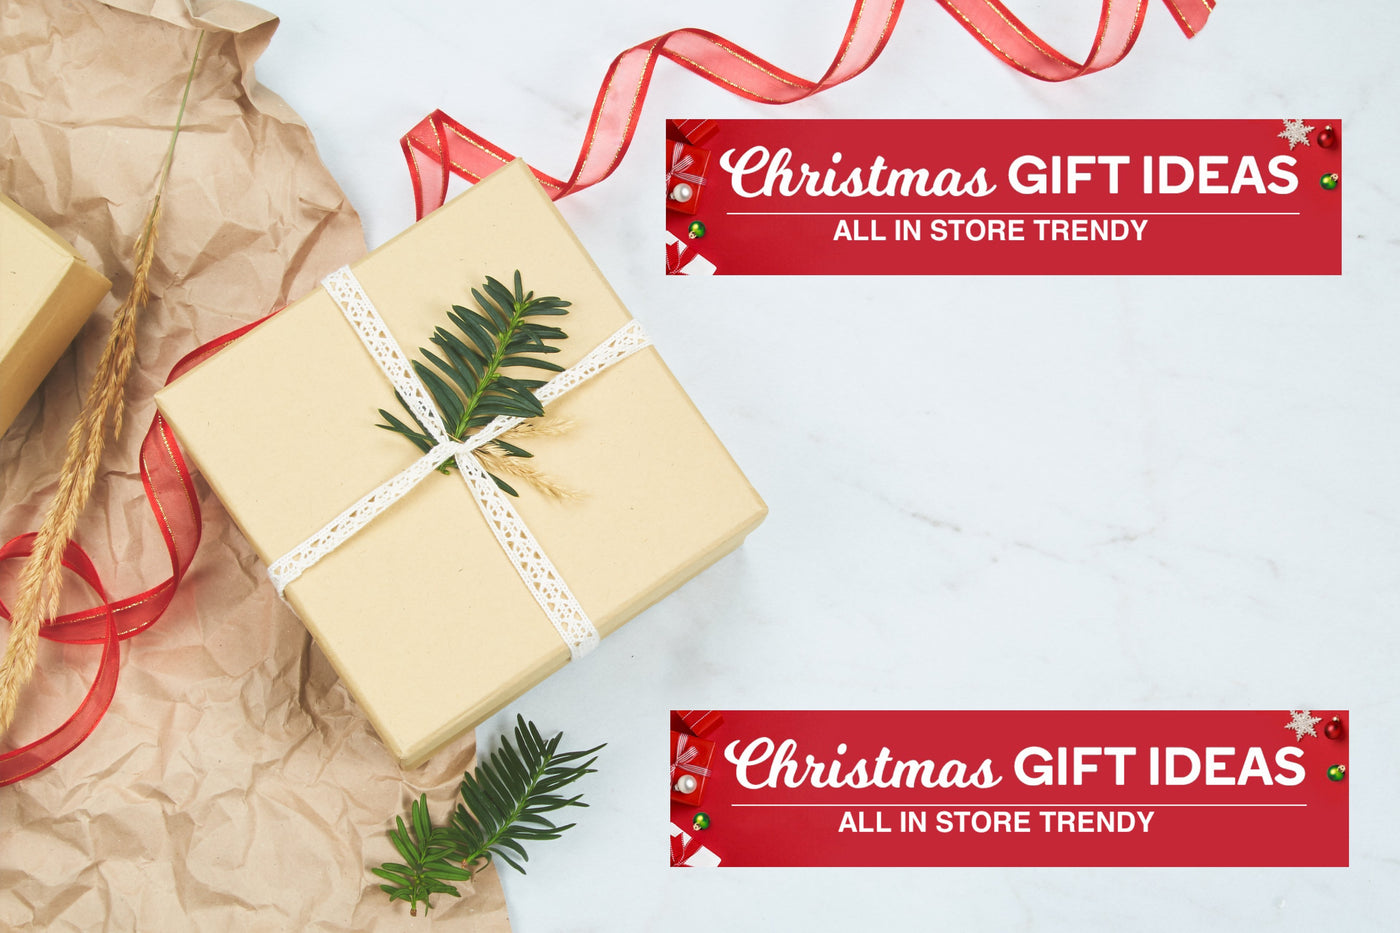 6 Christmas Gift Ideas For A Picky Teenage Daughter - Store Trendy